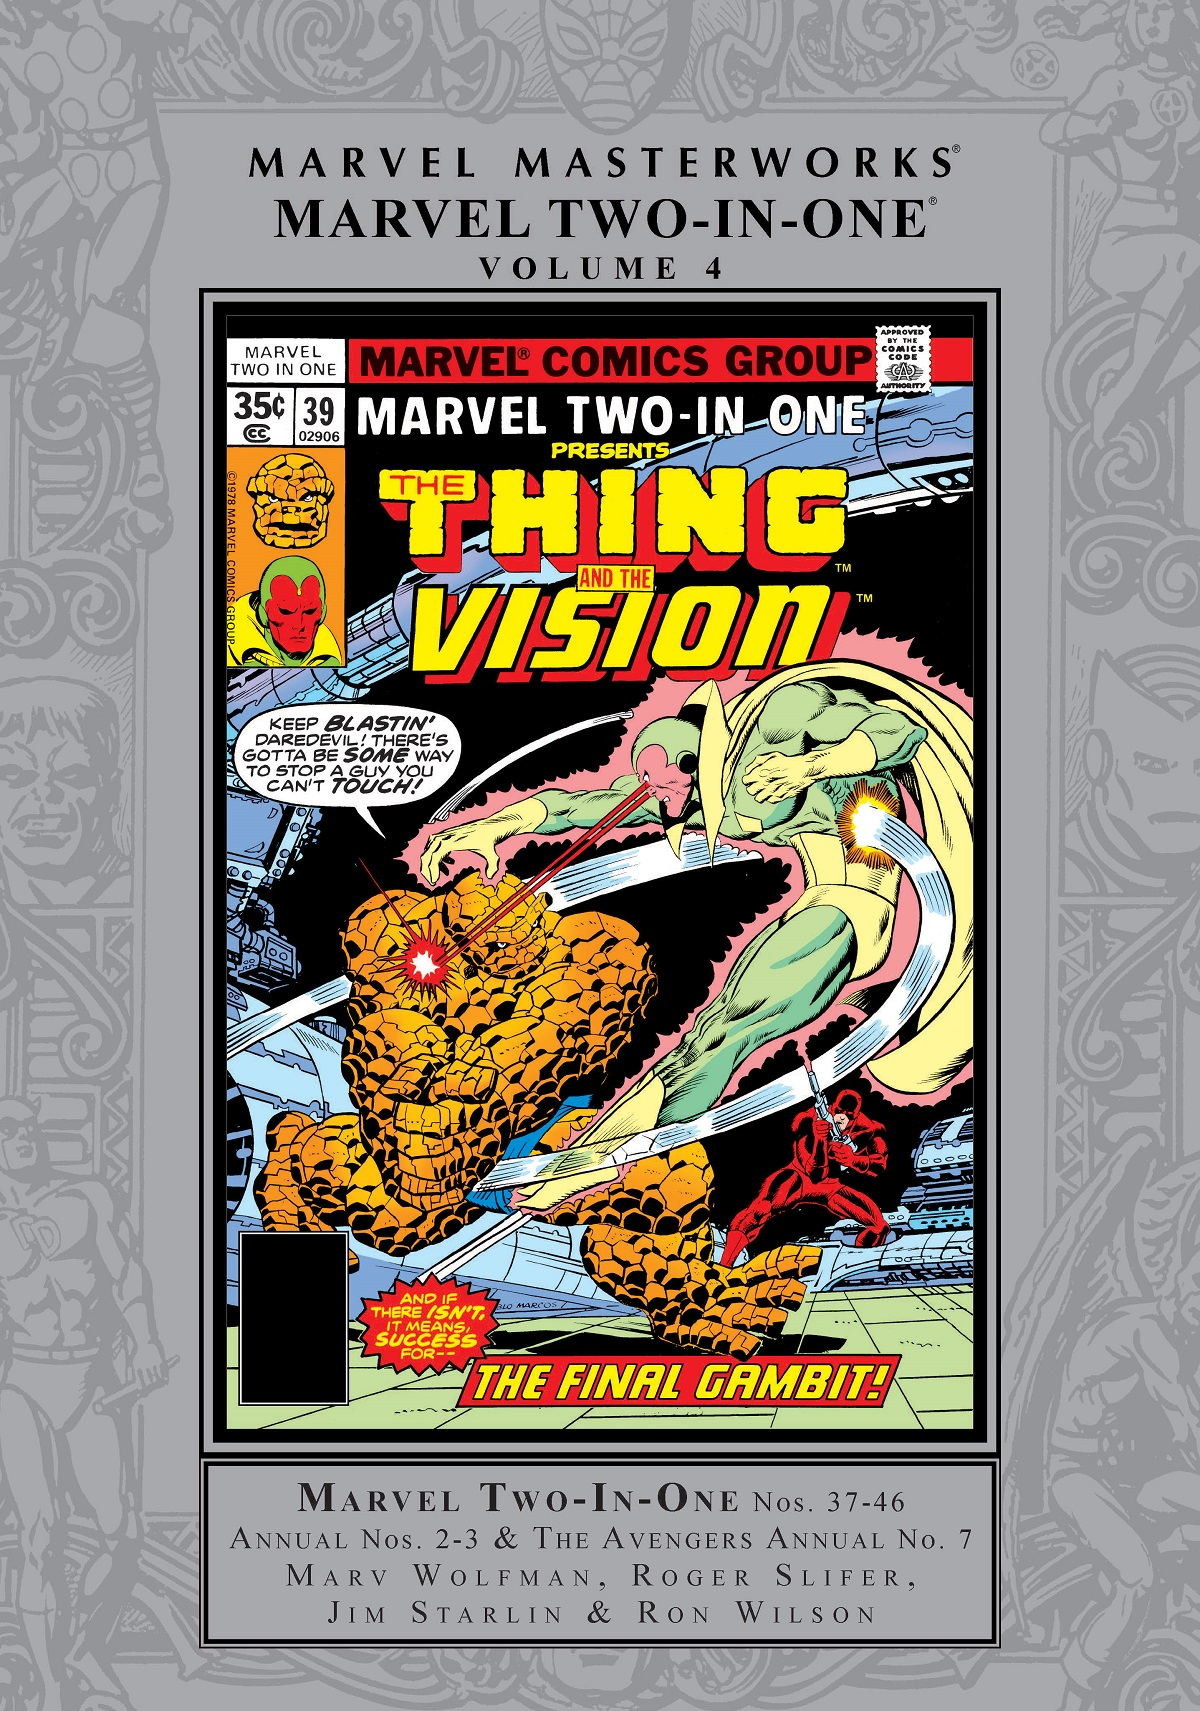 Marvel Masterworks: Marvel Two-in-One Vol. 4 (Hardcover)